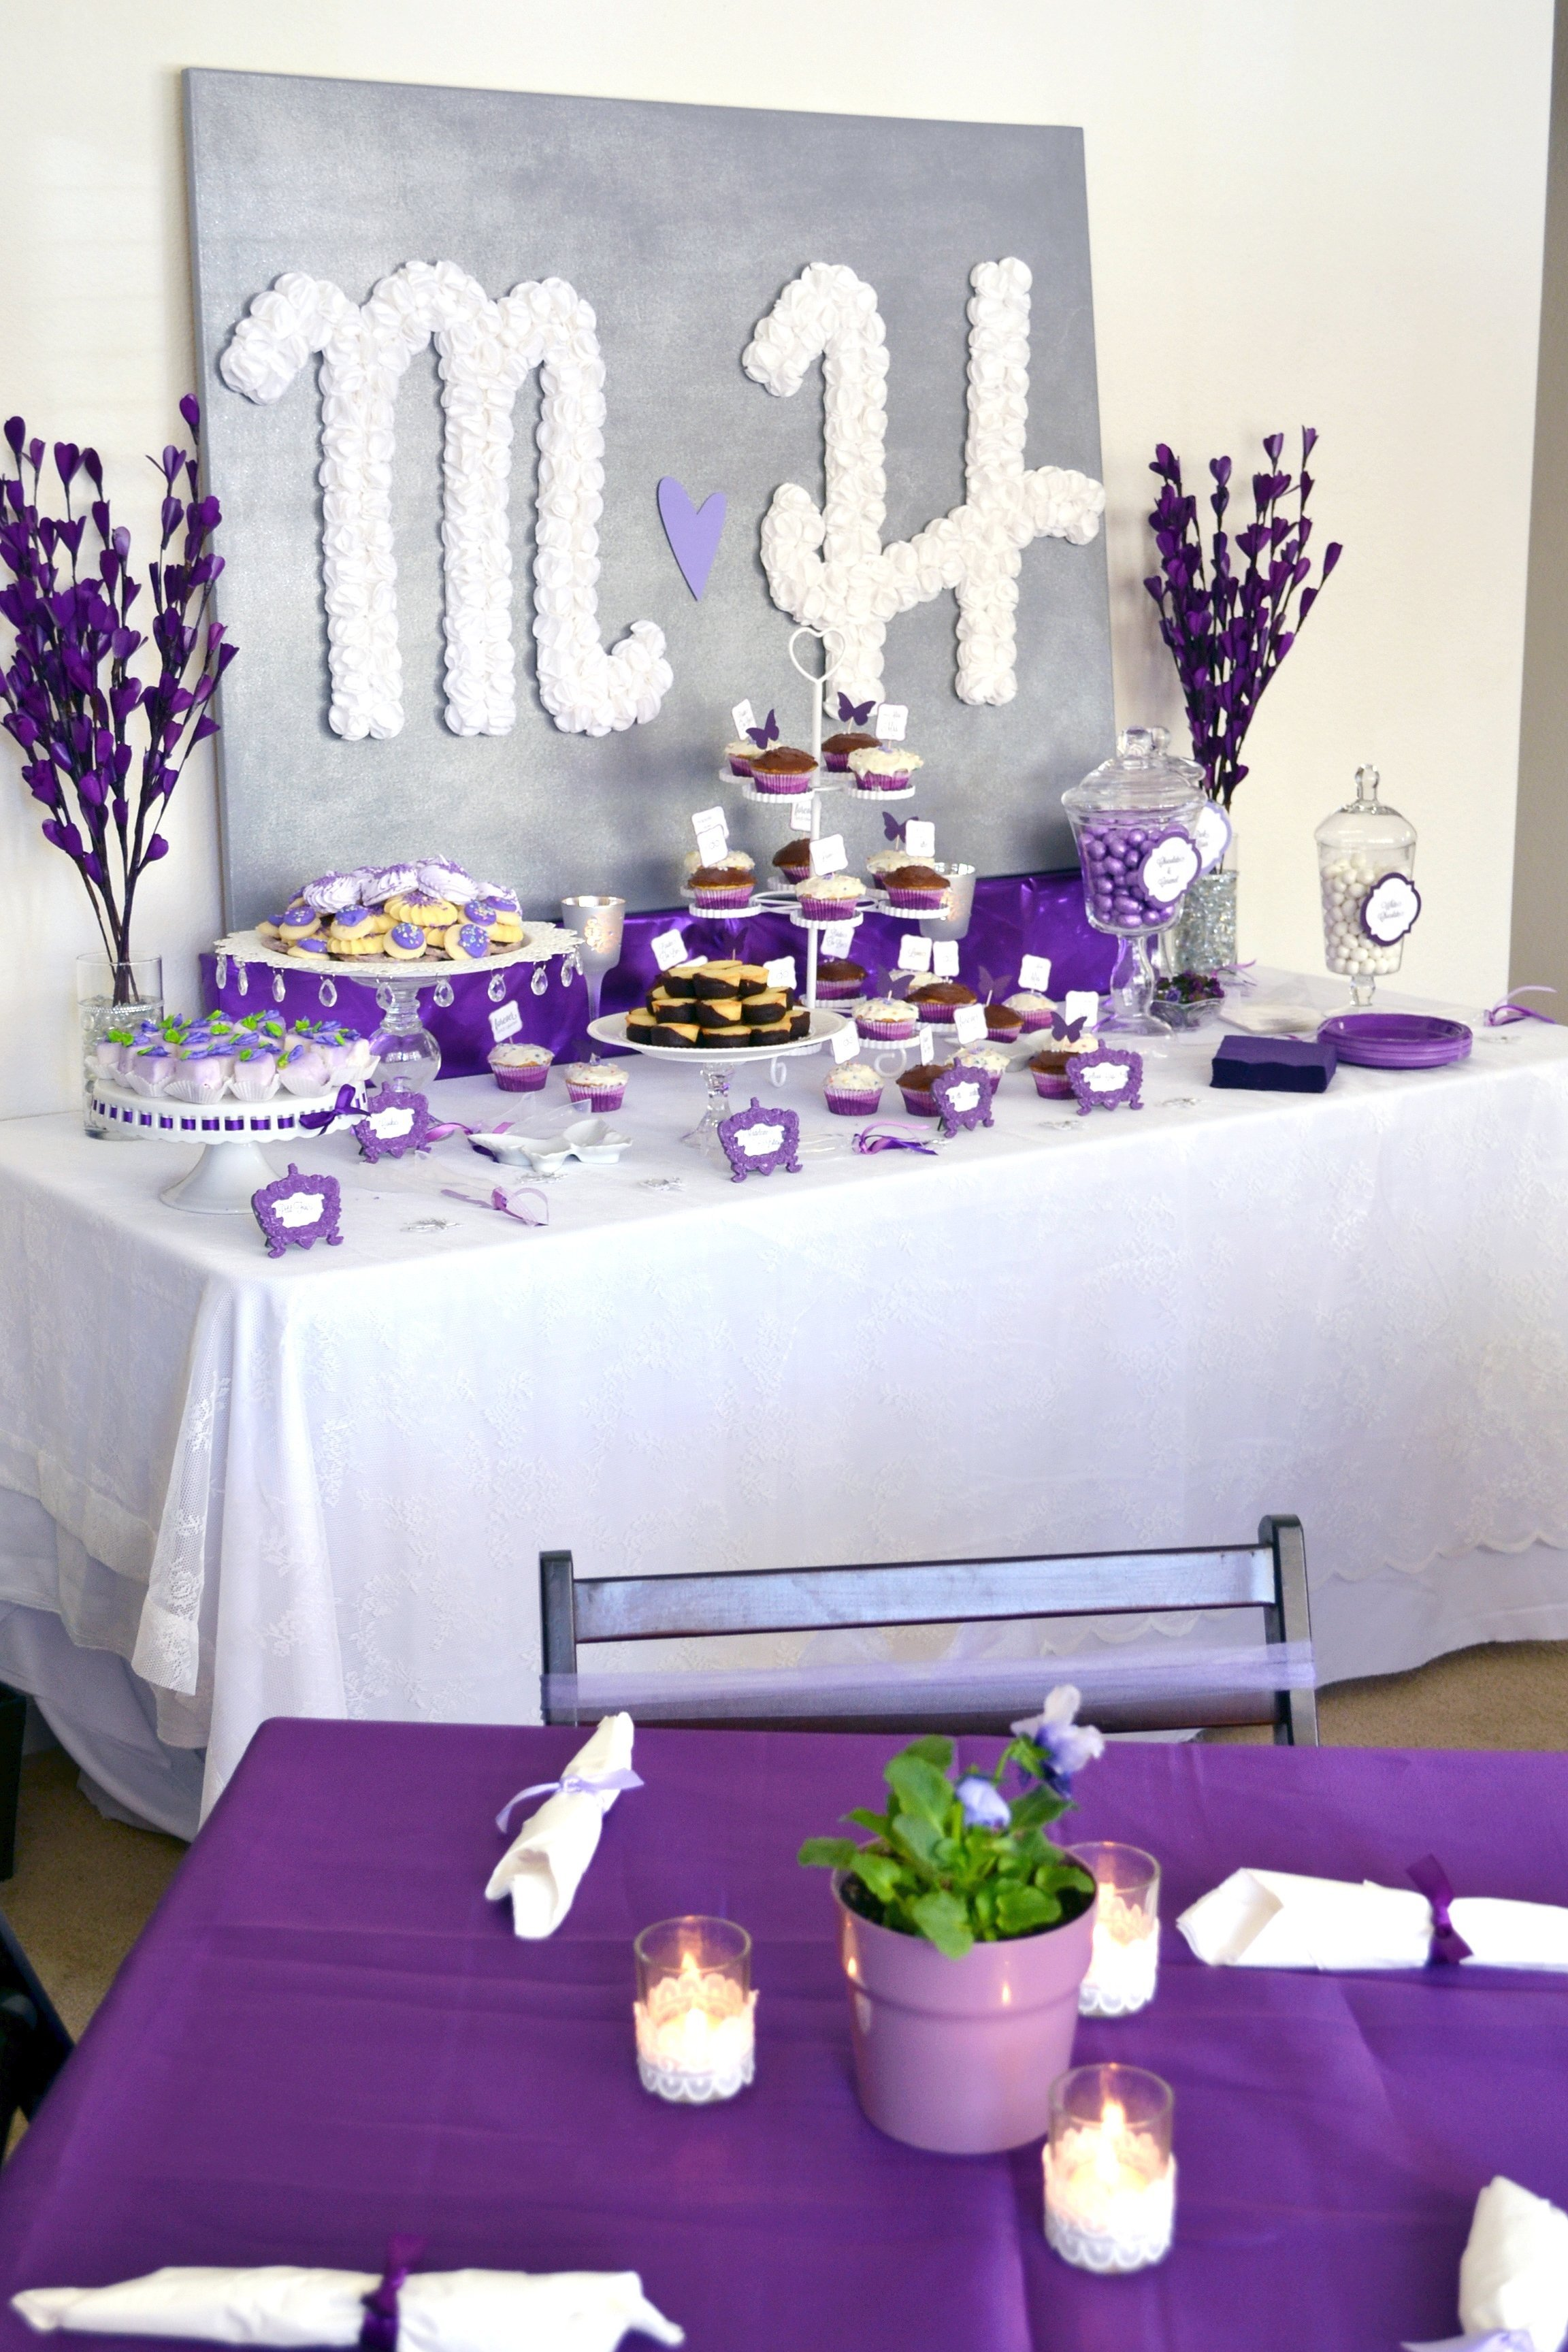 10 Stunning Decorating Ideas For Bridal Shower purple bridal shower decoration ideas all in home decor ideas